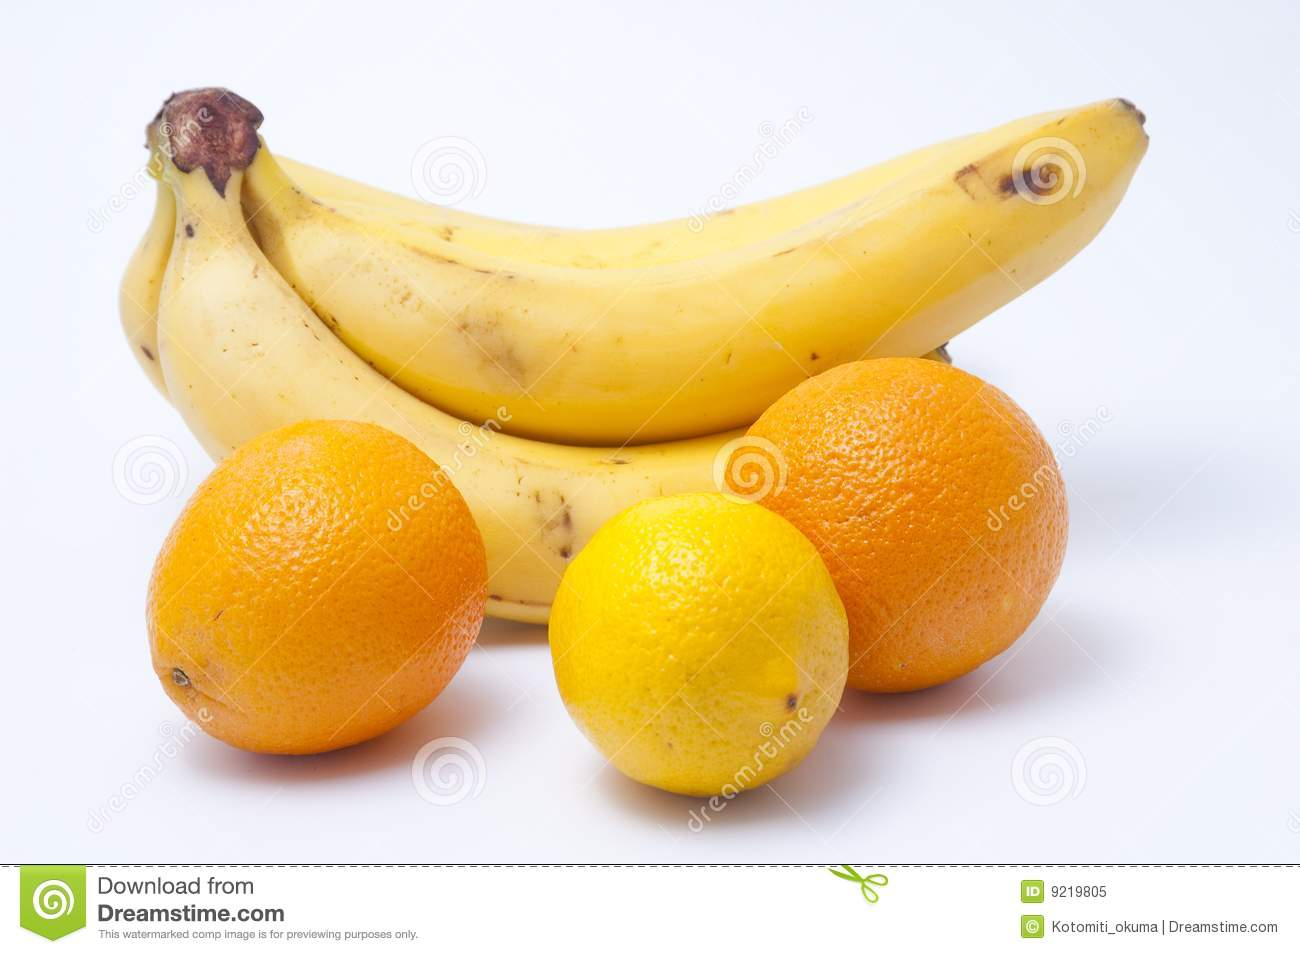 Bananas A Lemon And Two Oranges Stock Image - Image of ...